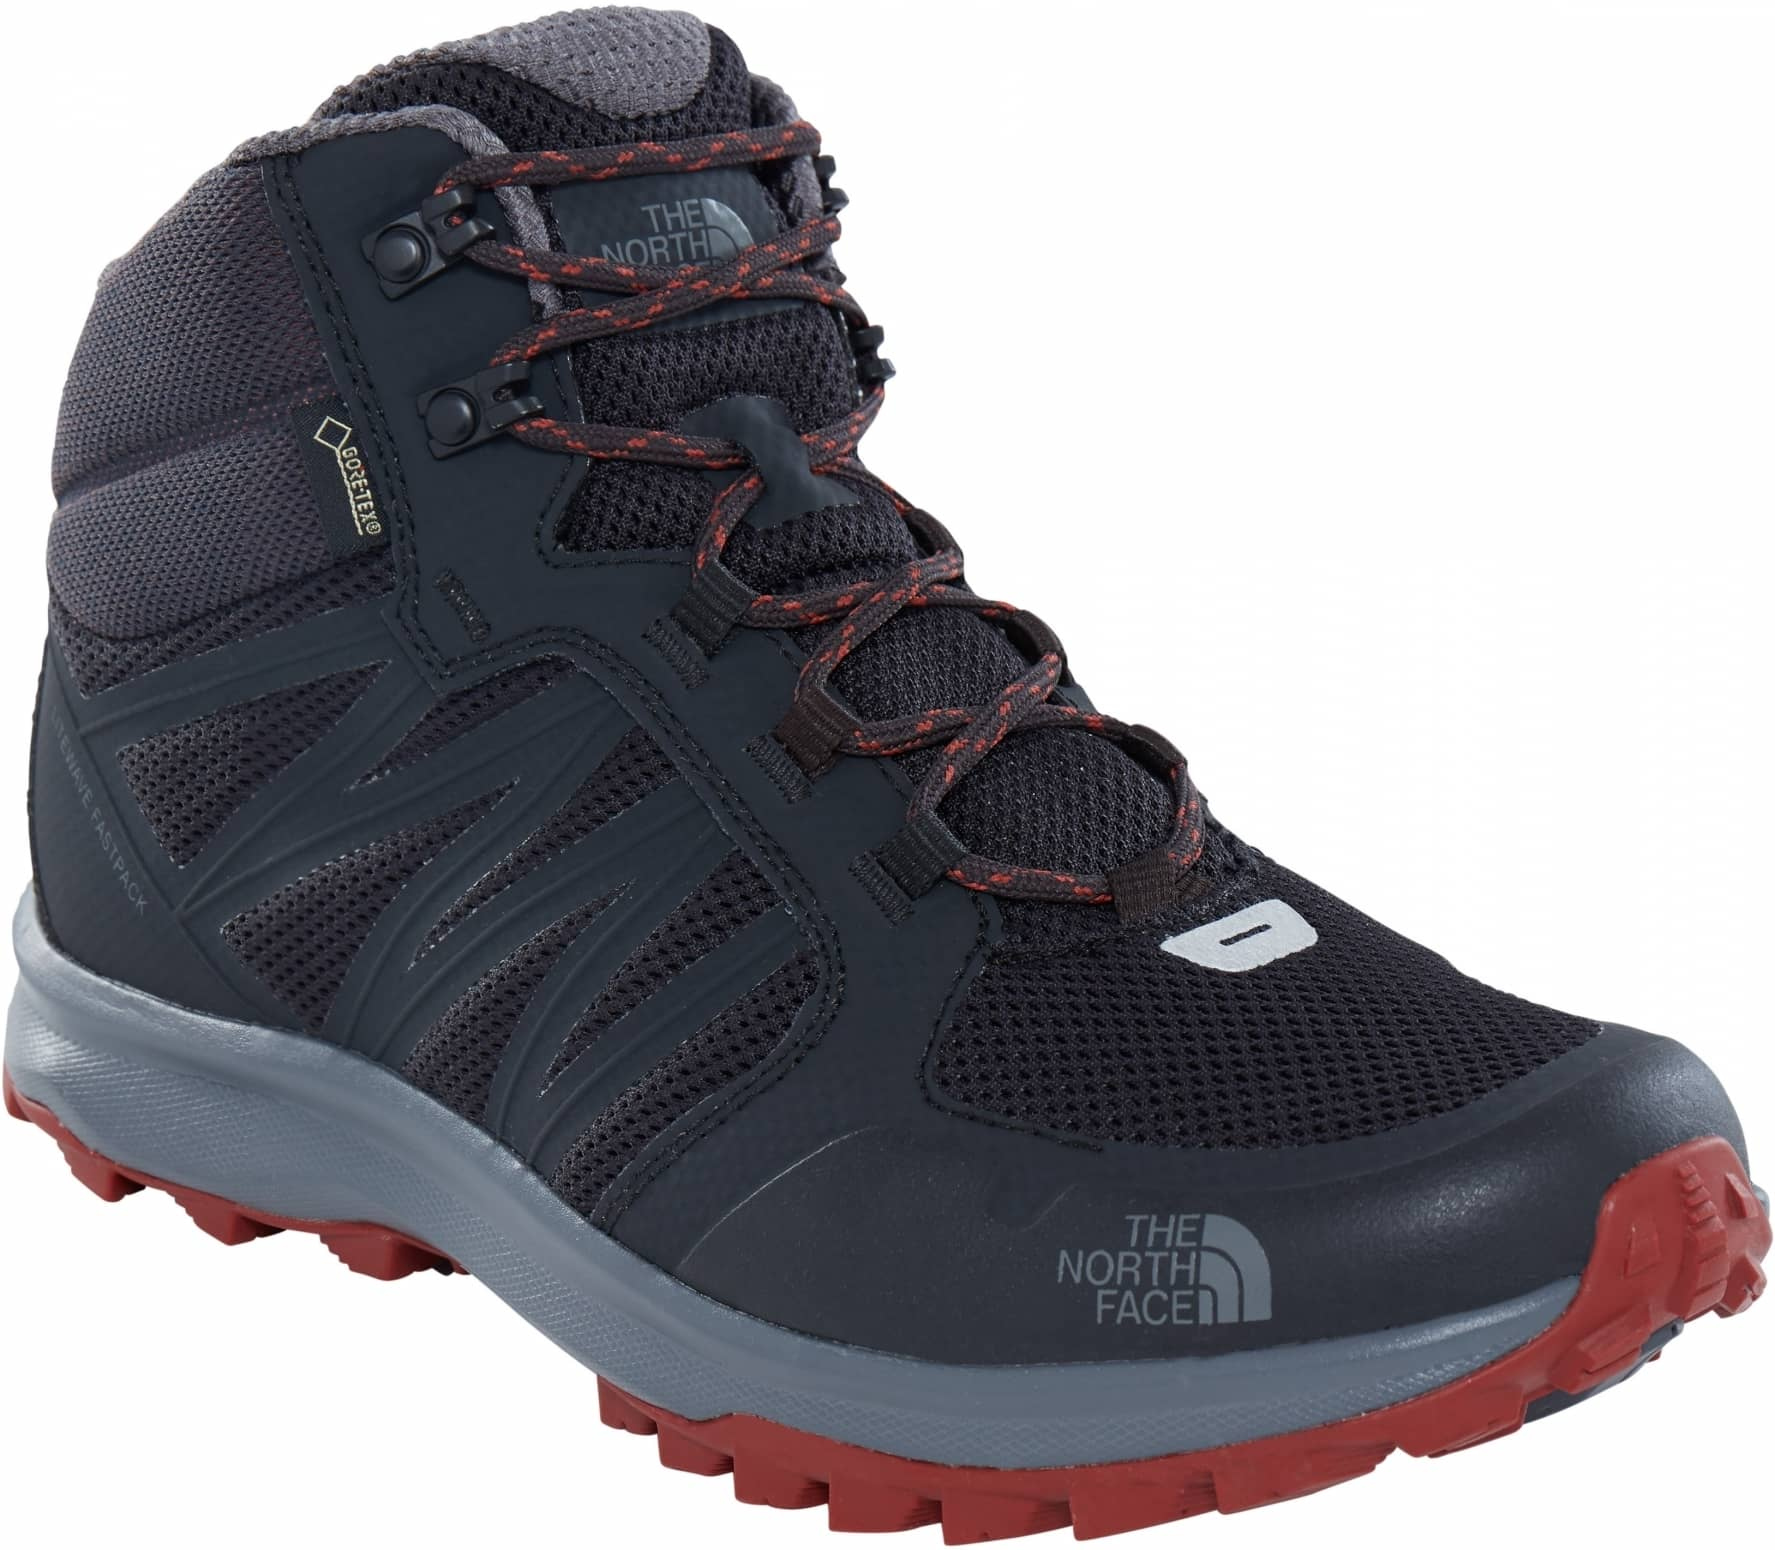 479675f13 The North Face - Litewave Fastpack Mid GTX men's hiking shoes (grey/brown)